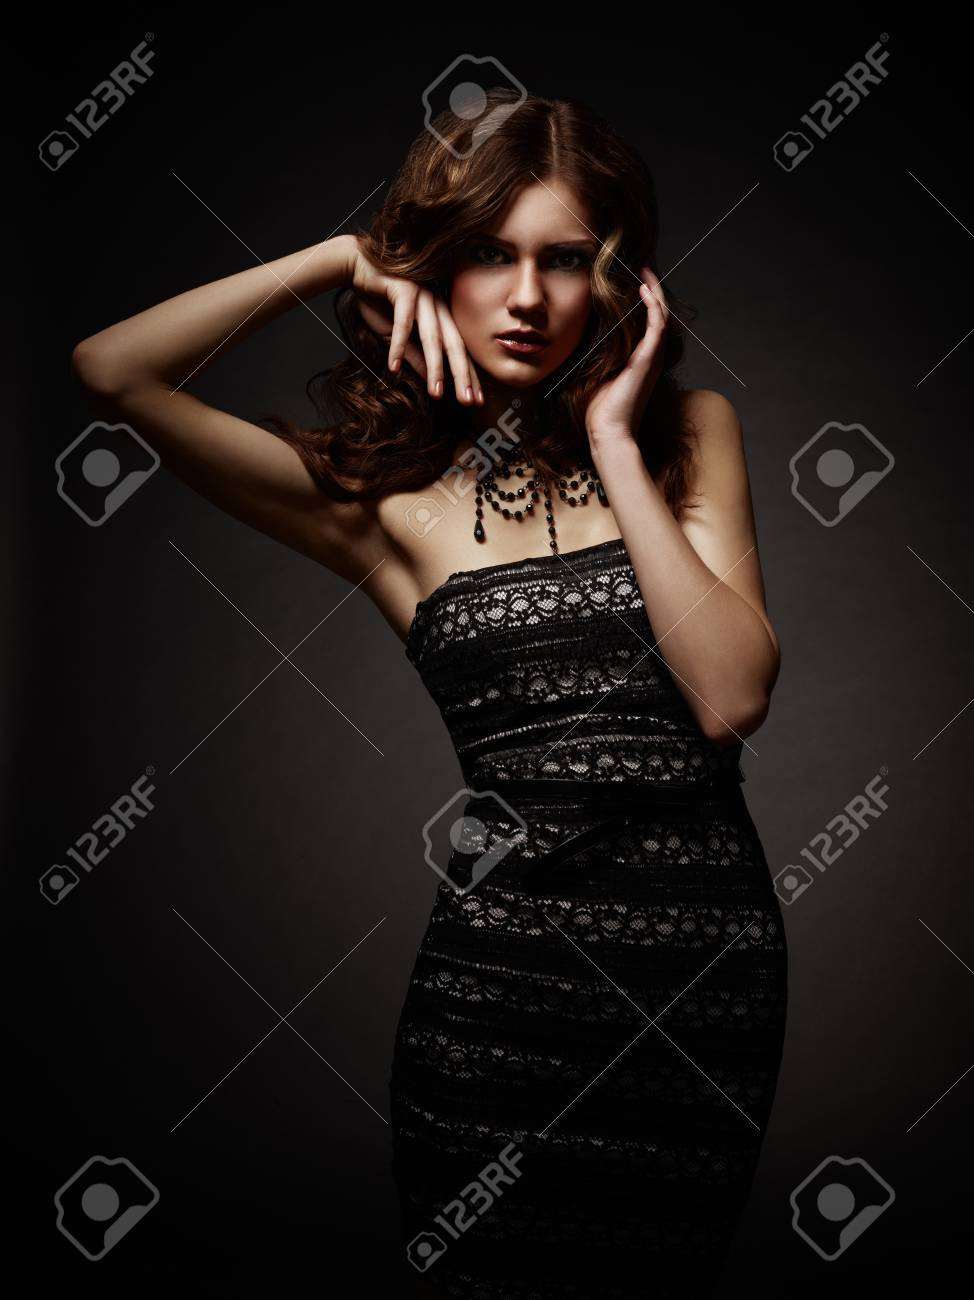 Young attractive woman praying over dark background Stock Photo - 13401611